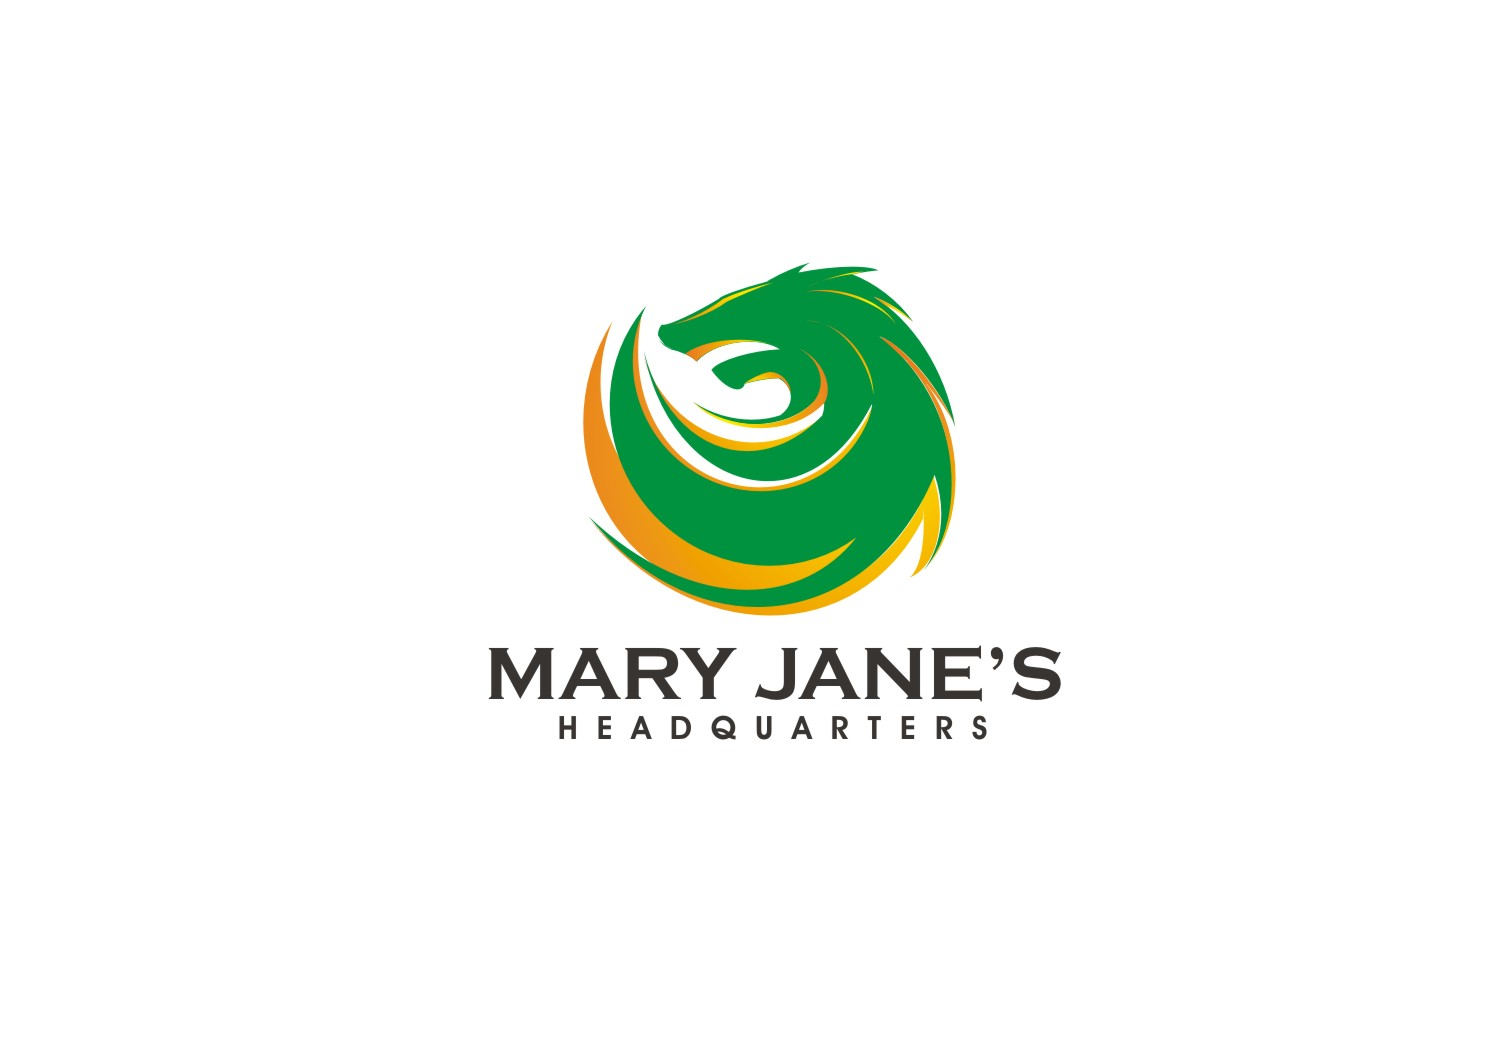 Logo Design by yanxsant - Entry No. 37 in the Logo Design Contest Mary Jane's Headquarters Logo Design.